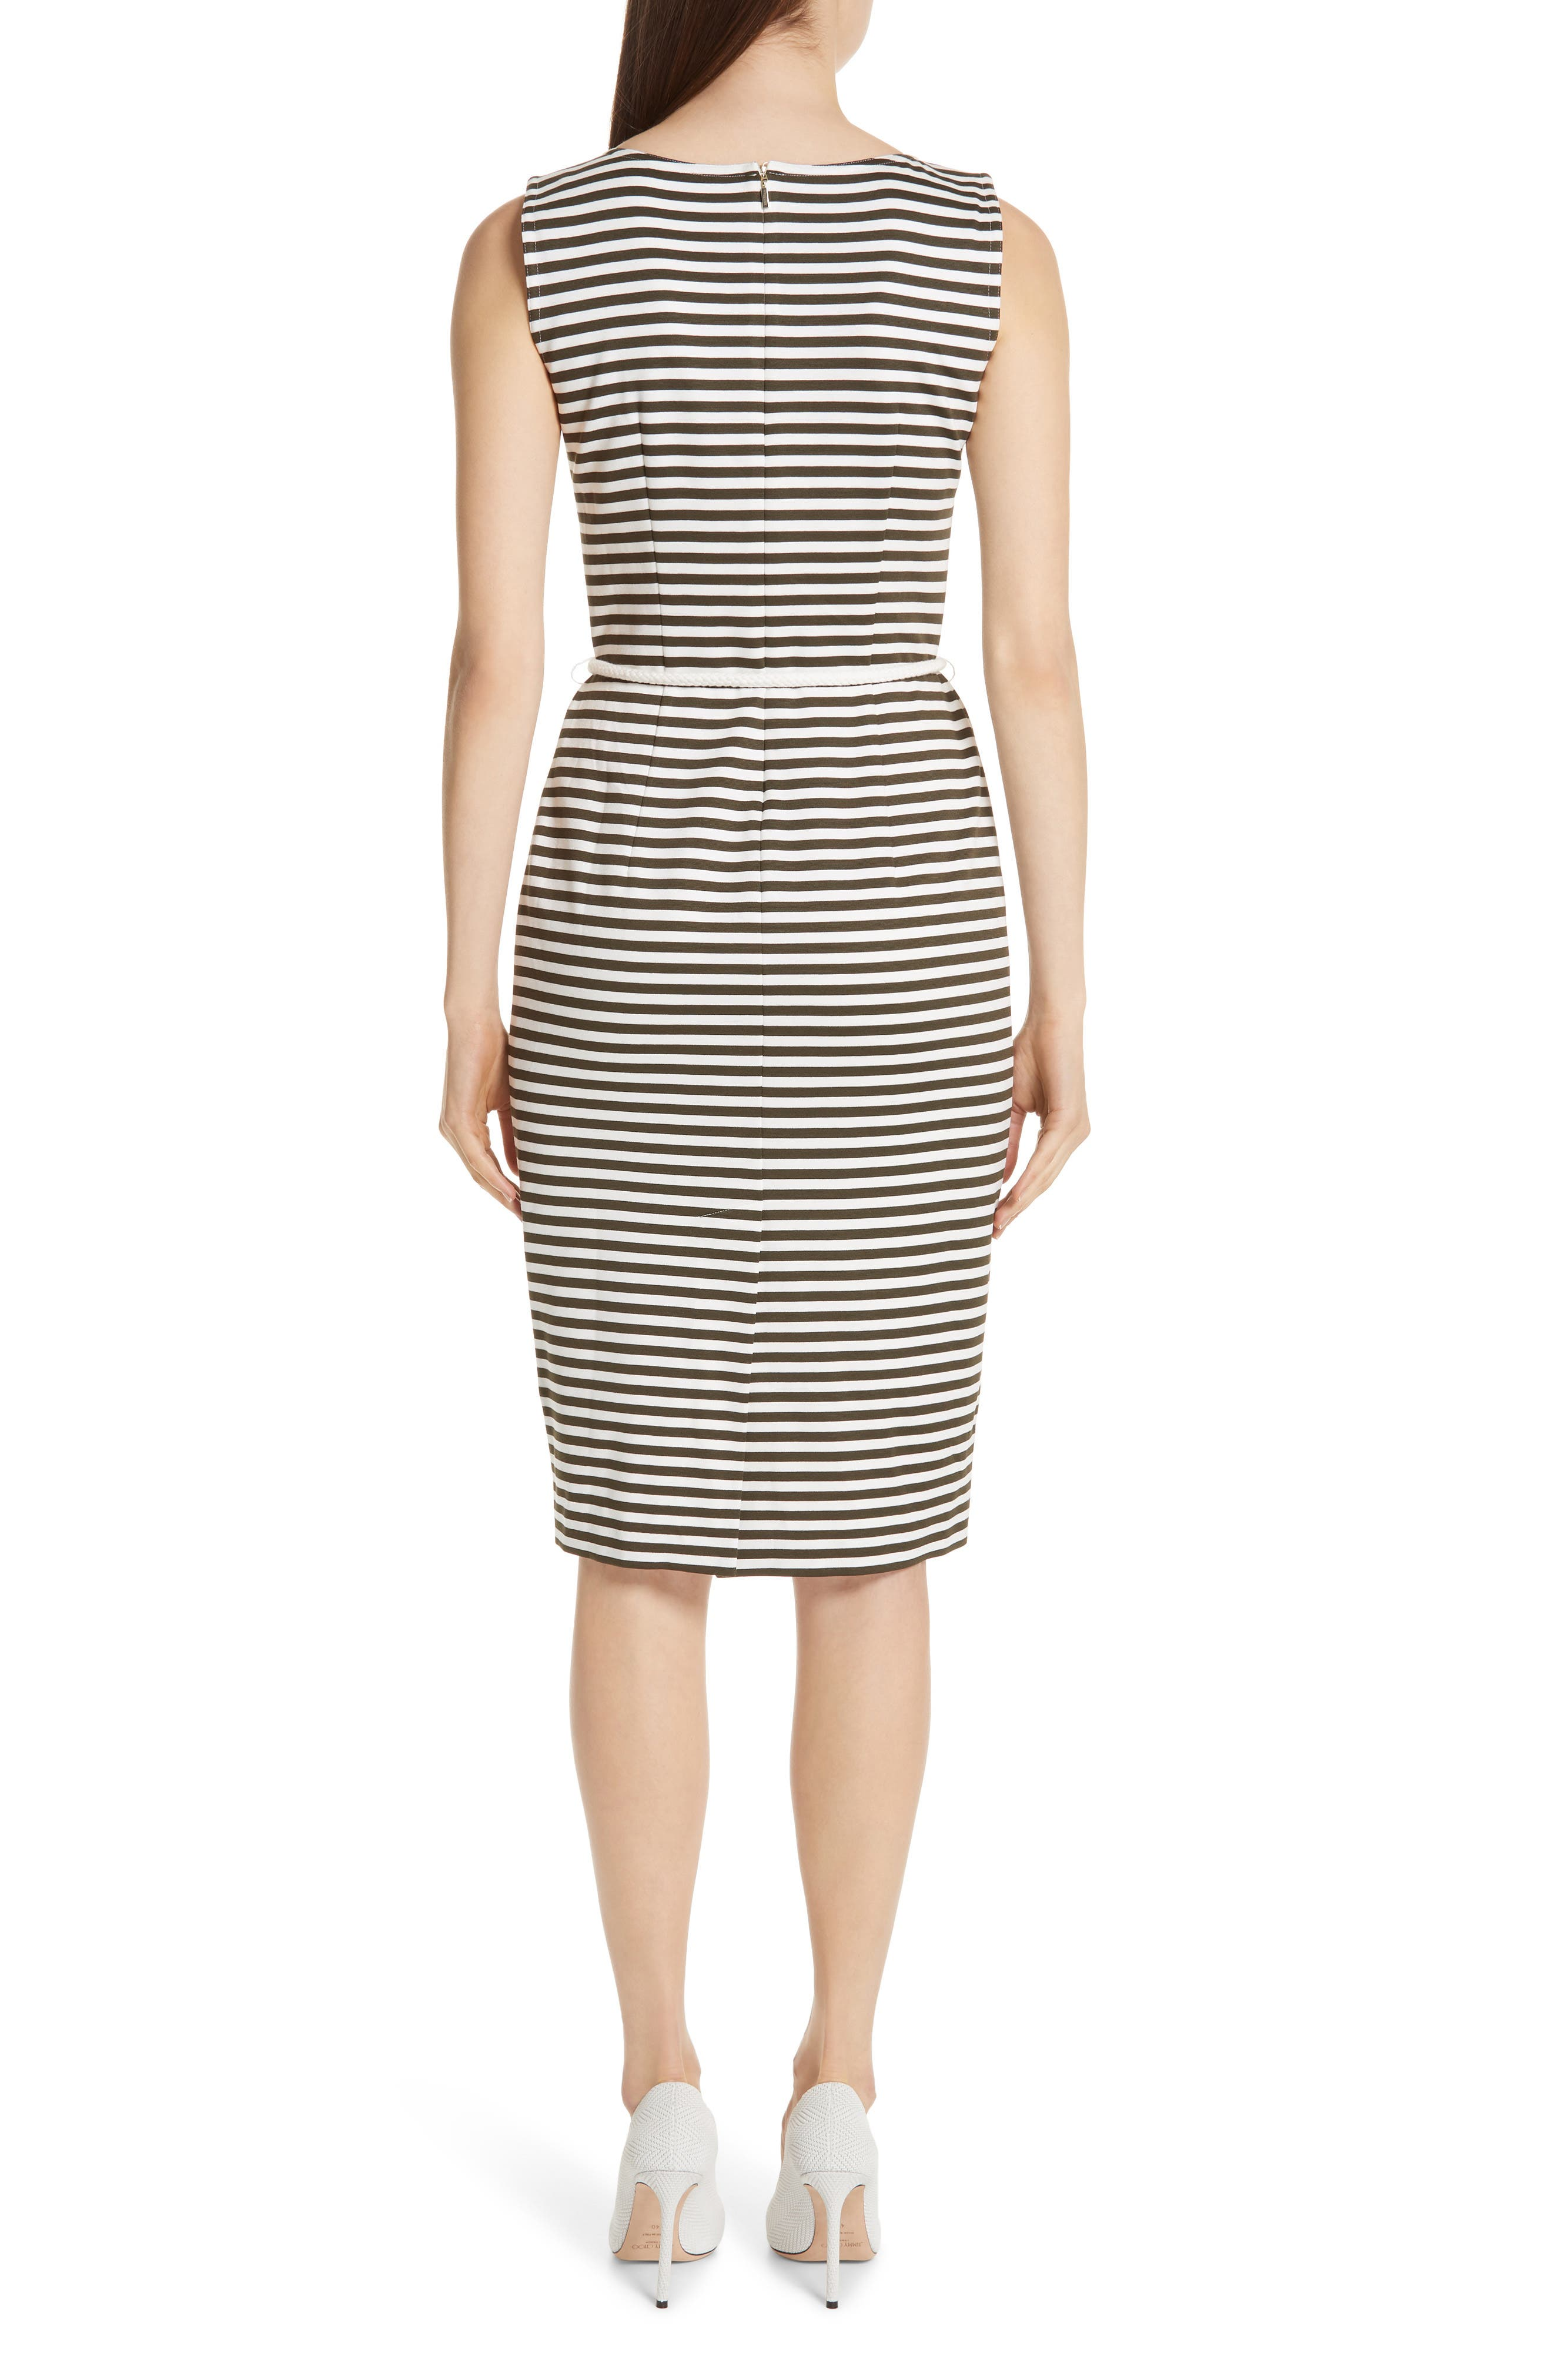 MAX MARA, Comica Stripe Dress, Alternate thumbnail 2, color, KAKI